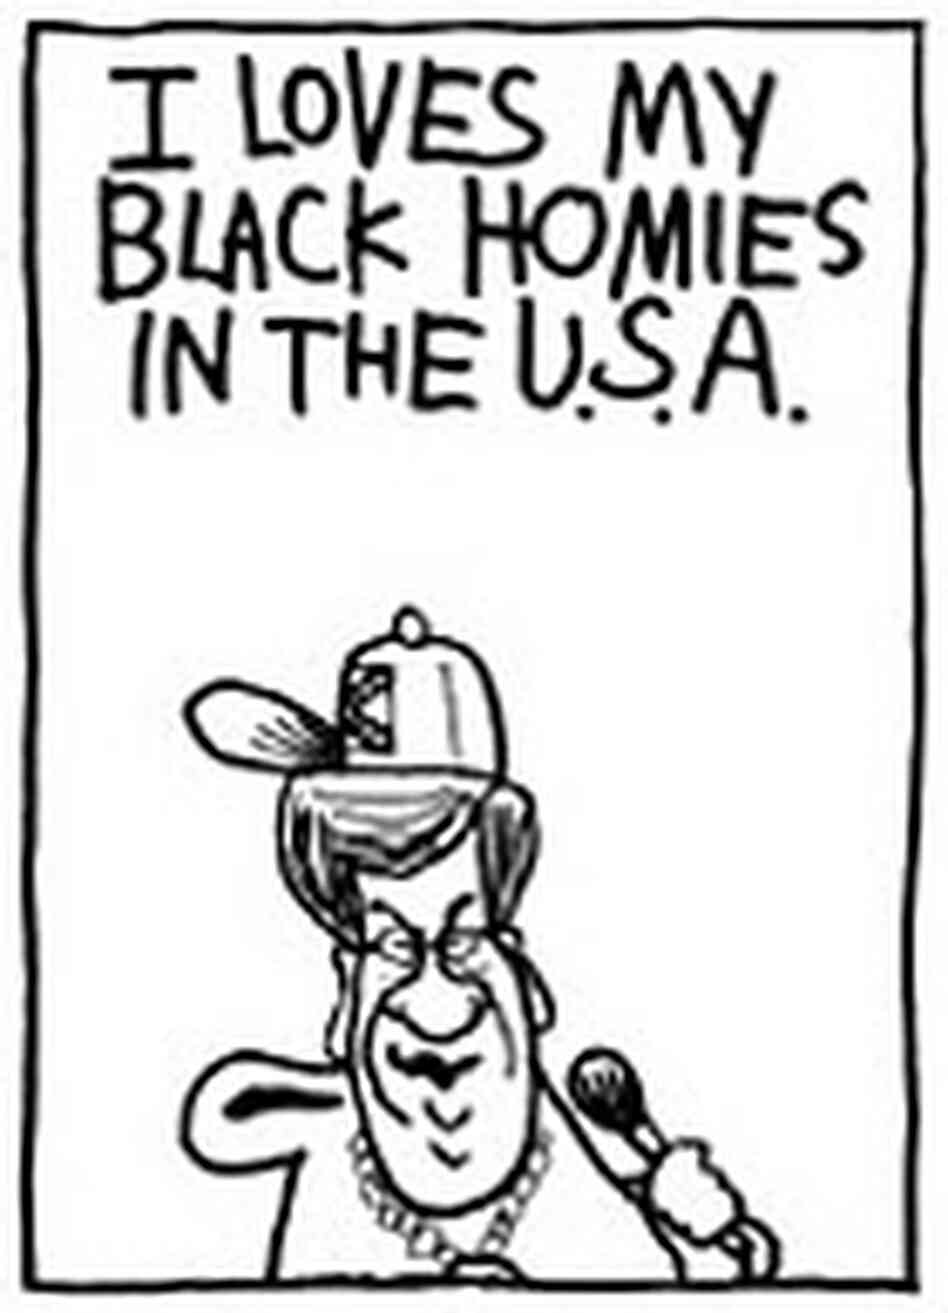 Love la cucaracha comic strip